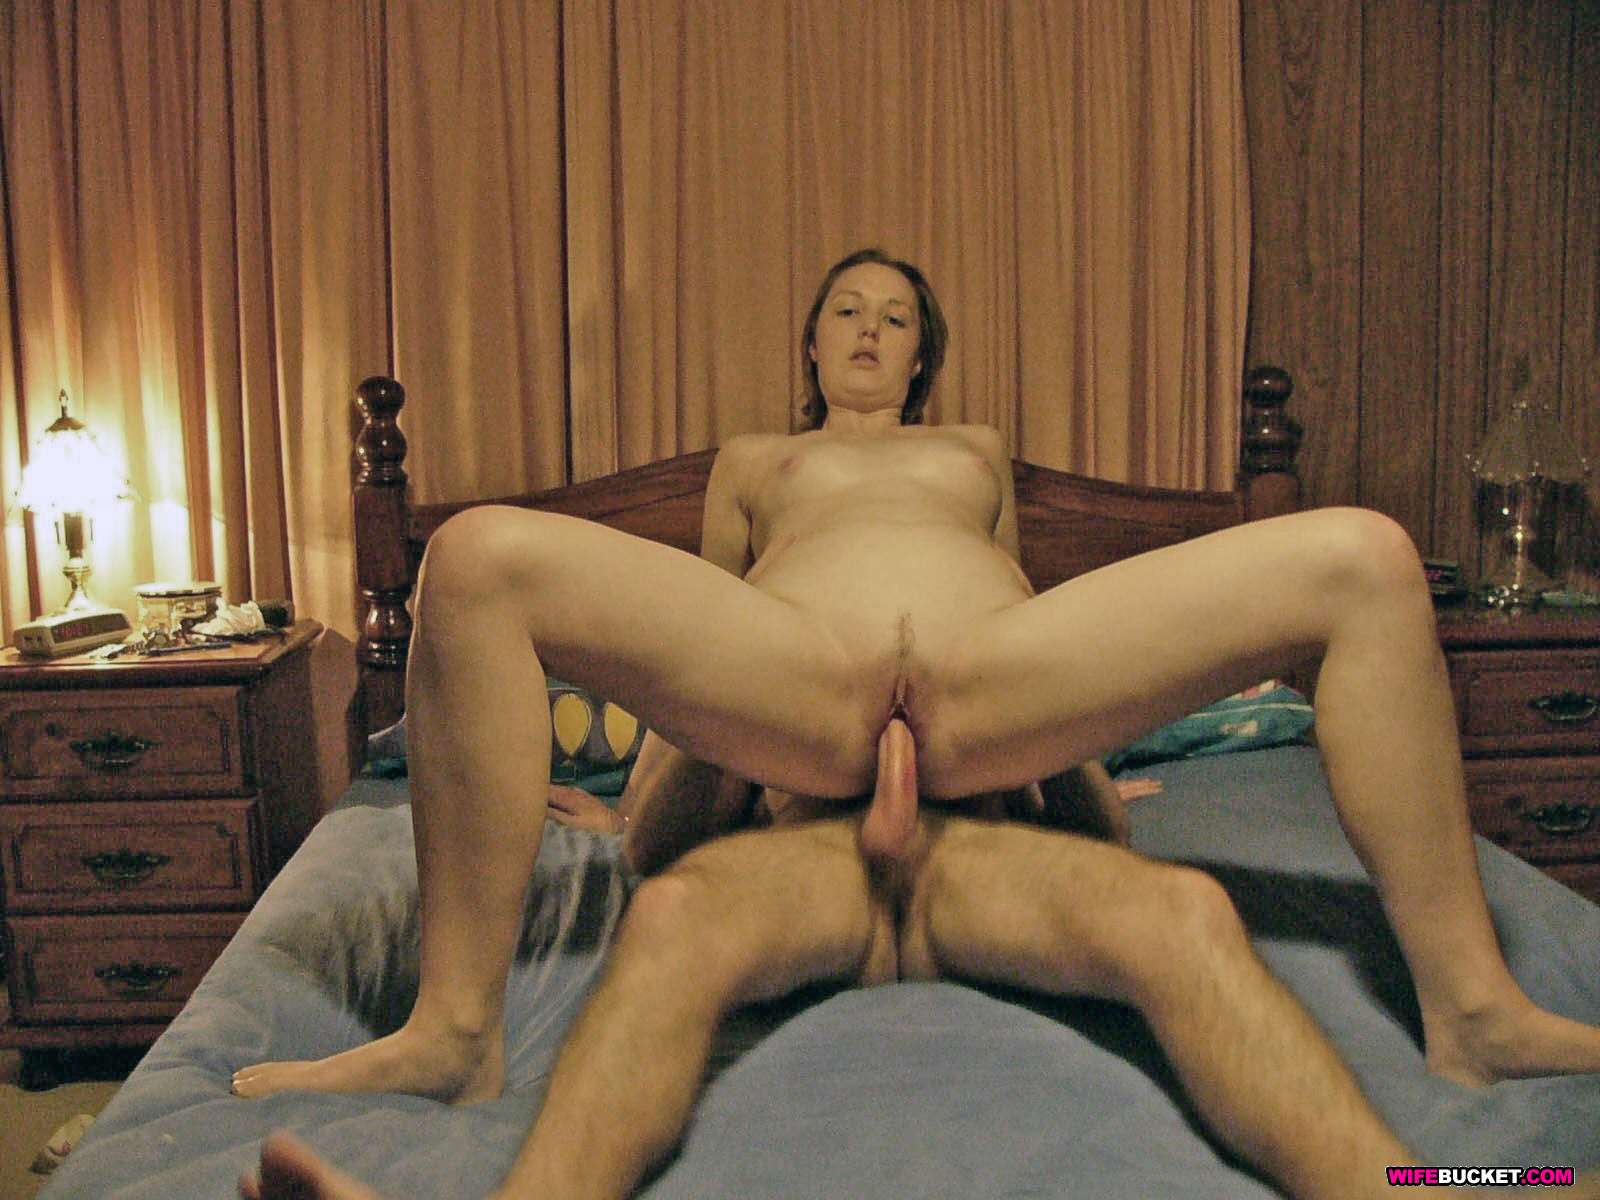 Wife Bucket - Naked Wives, Home Porn, Amateur Swingers -8789